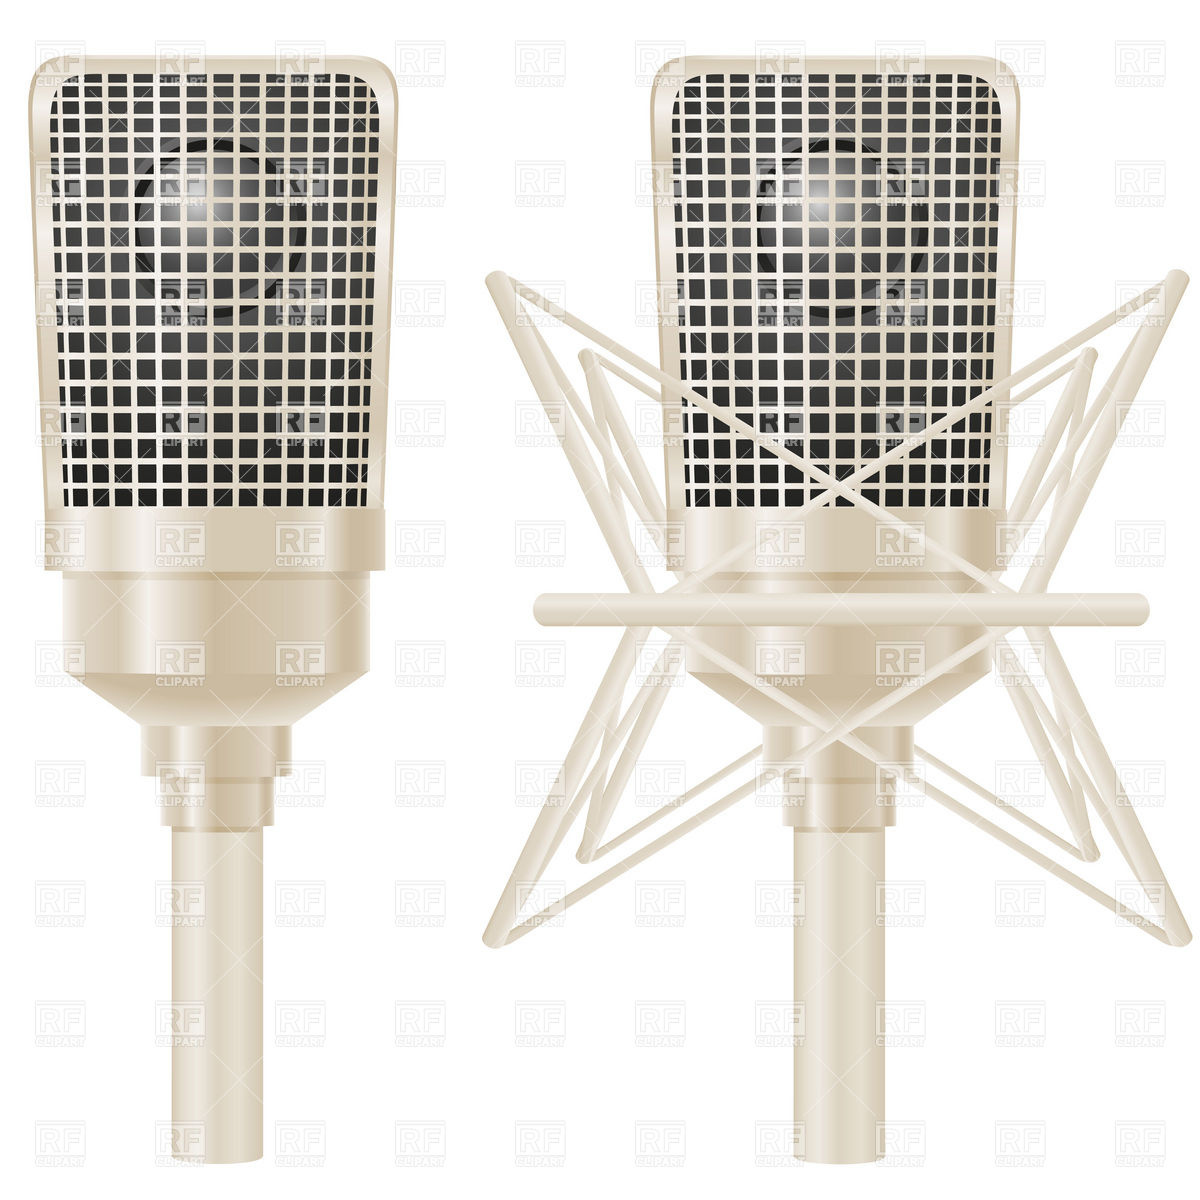 Professional Studio Microphone Objects Download Royalty Free Vector